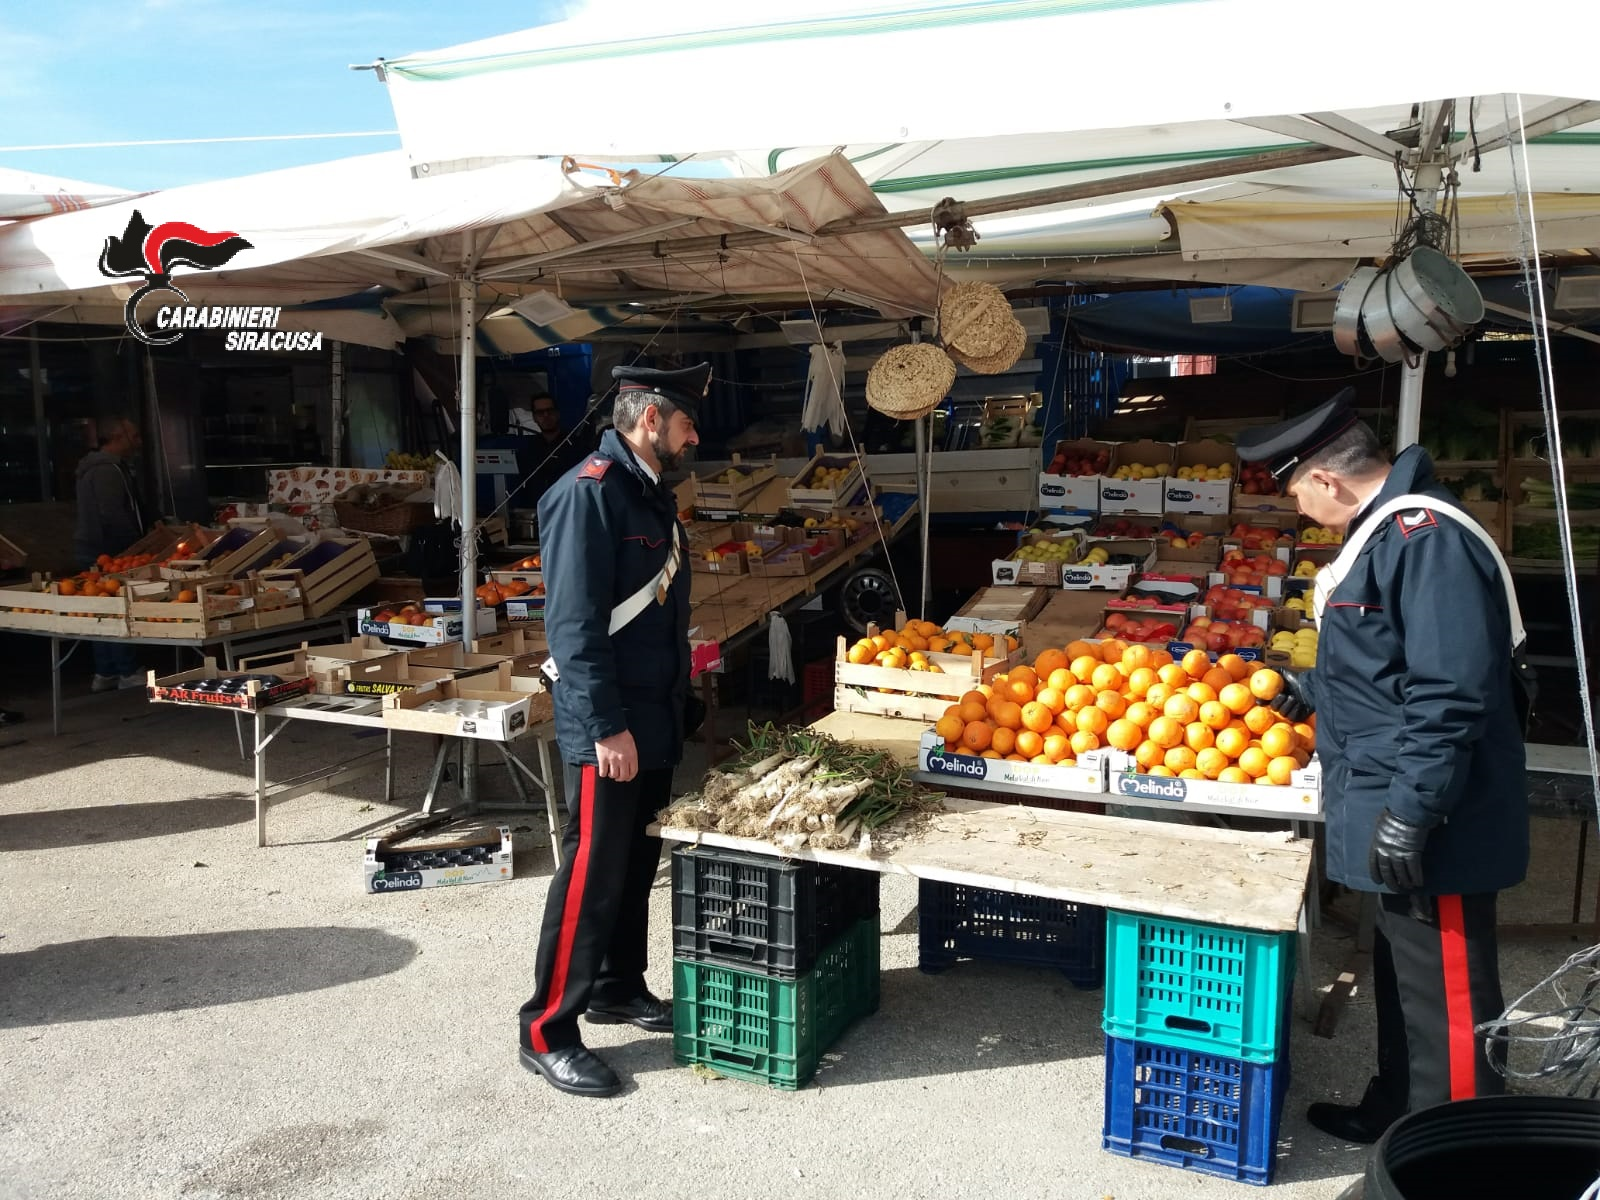 Sequestrati 500 chili di frutta a un ambulante di Siracusa